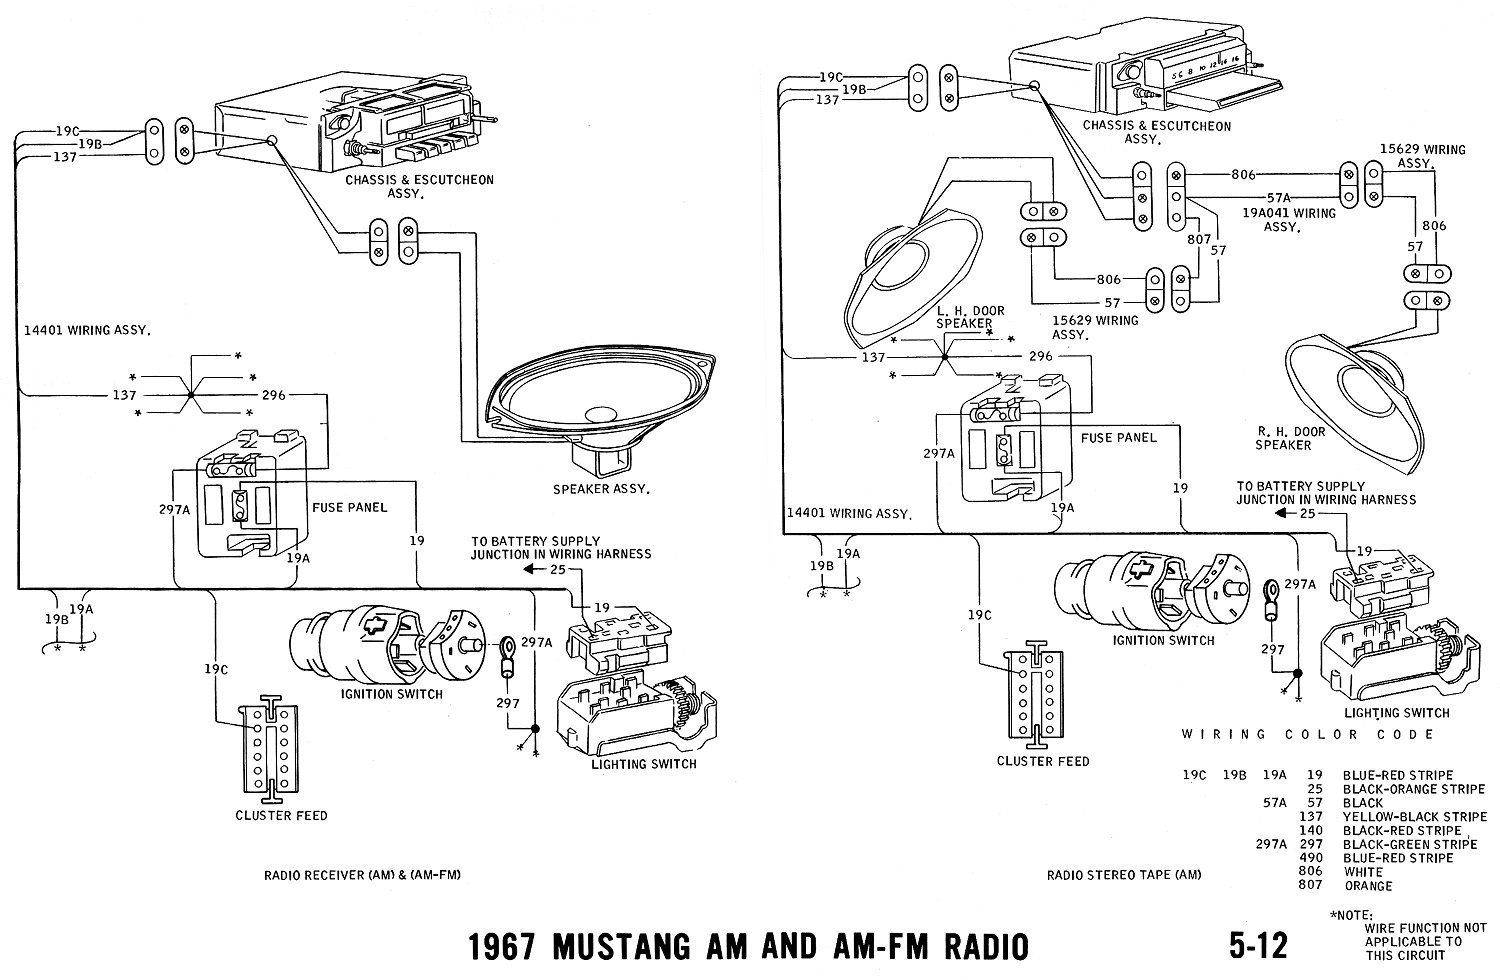 Radio Wiring Diagram For 08 Dodge Charger Shelby Diagrams 1970 Ford Schema Buick Regal